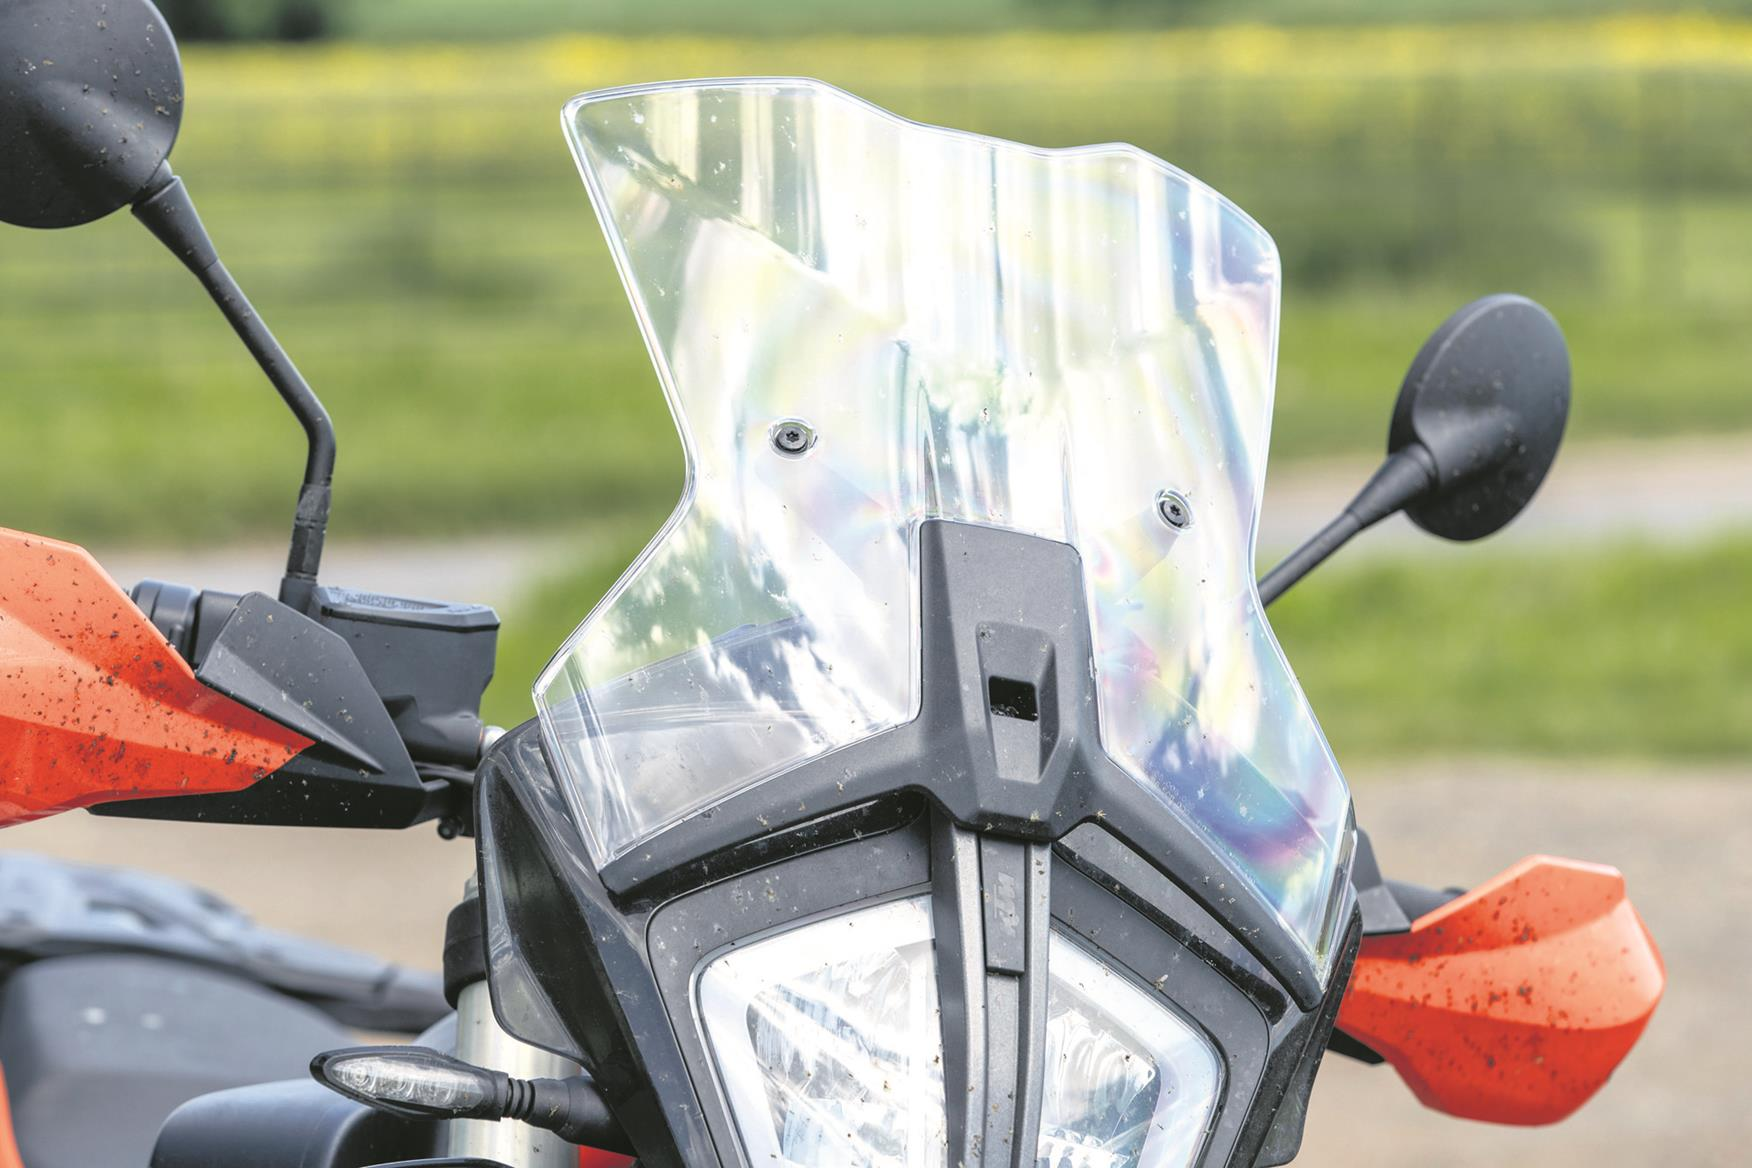 The KTM 790 Adventure R standard screen causes problems